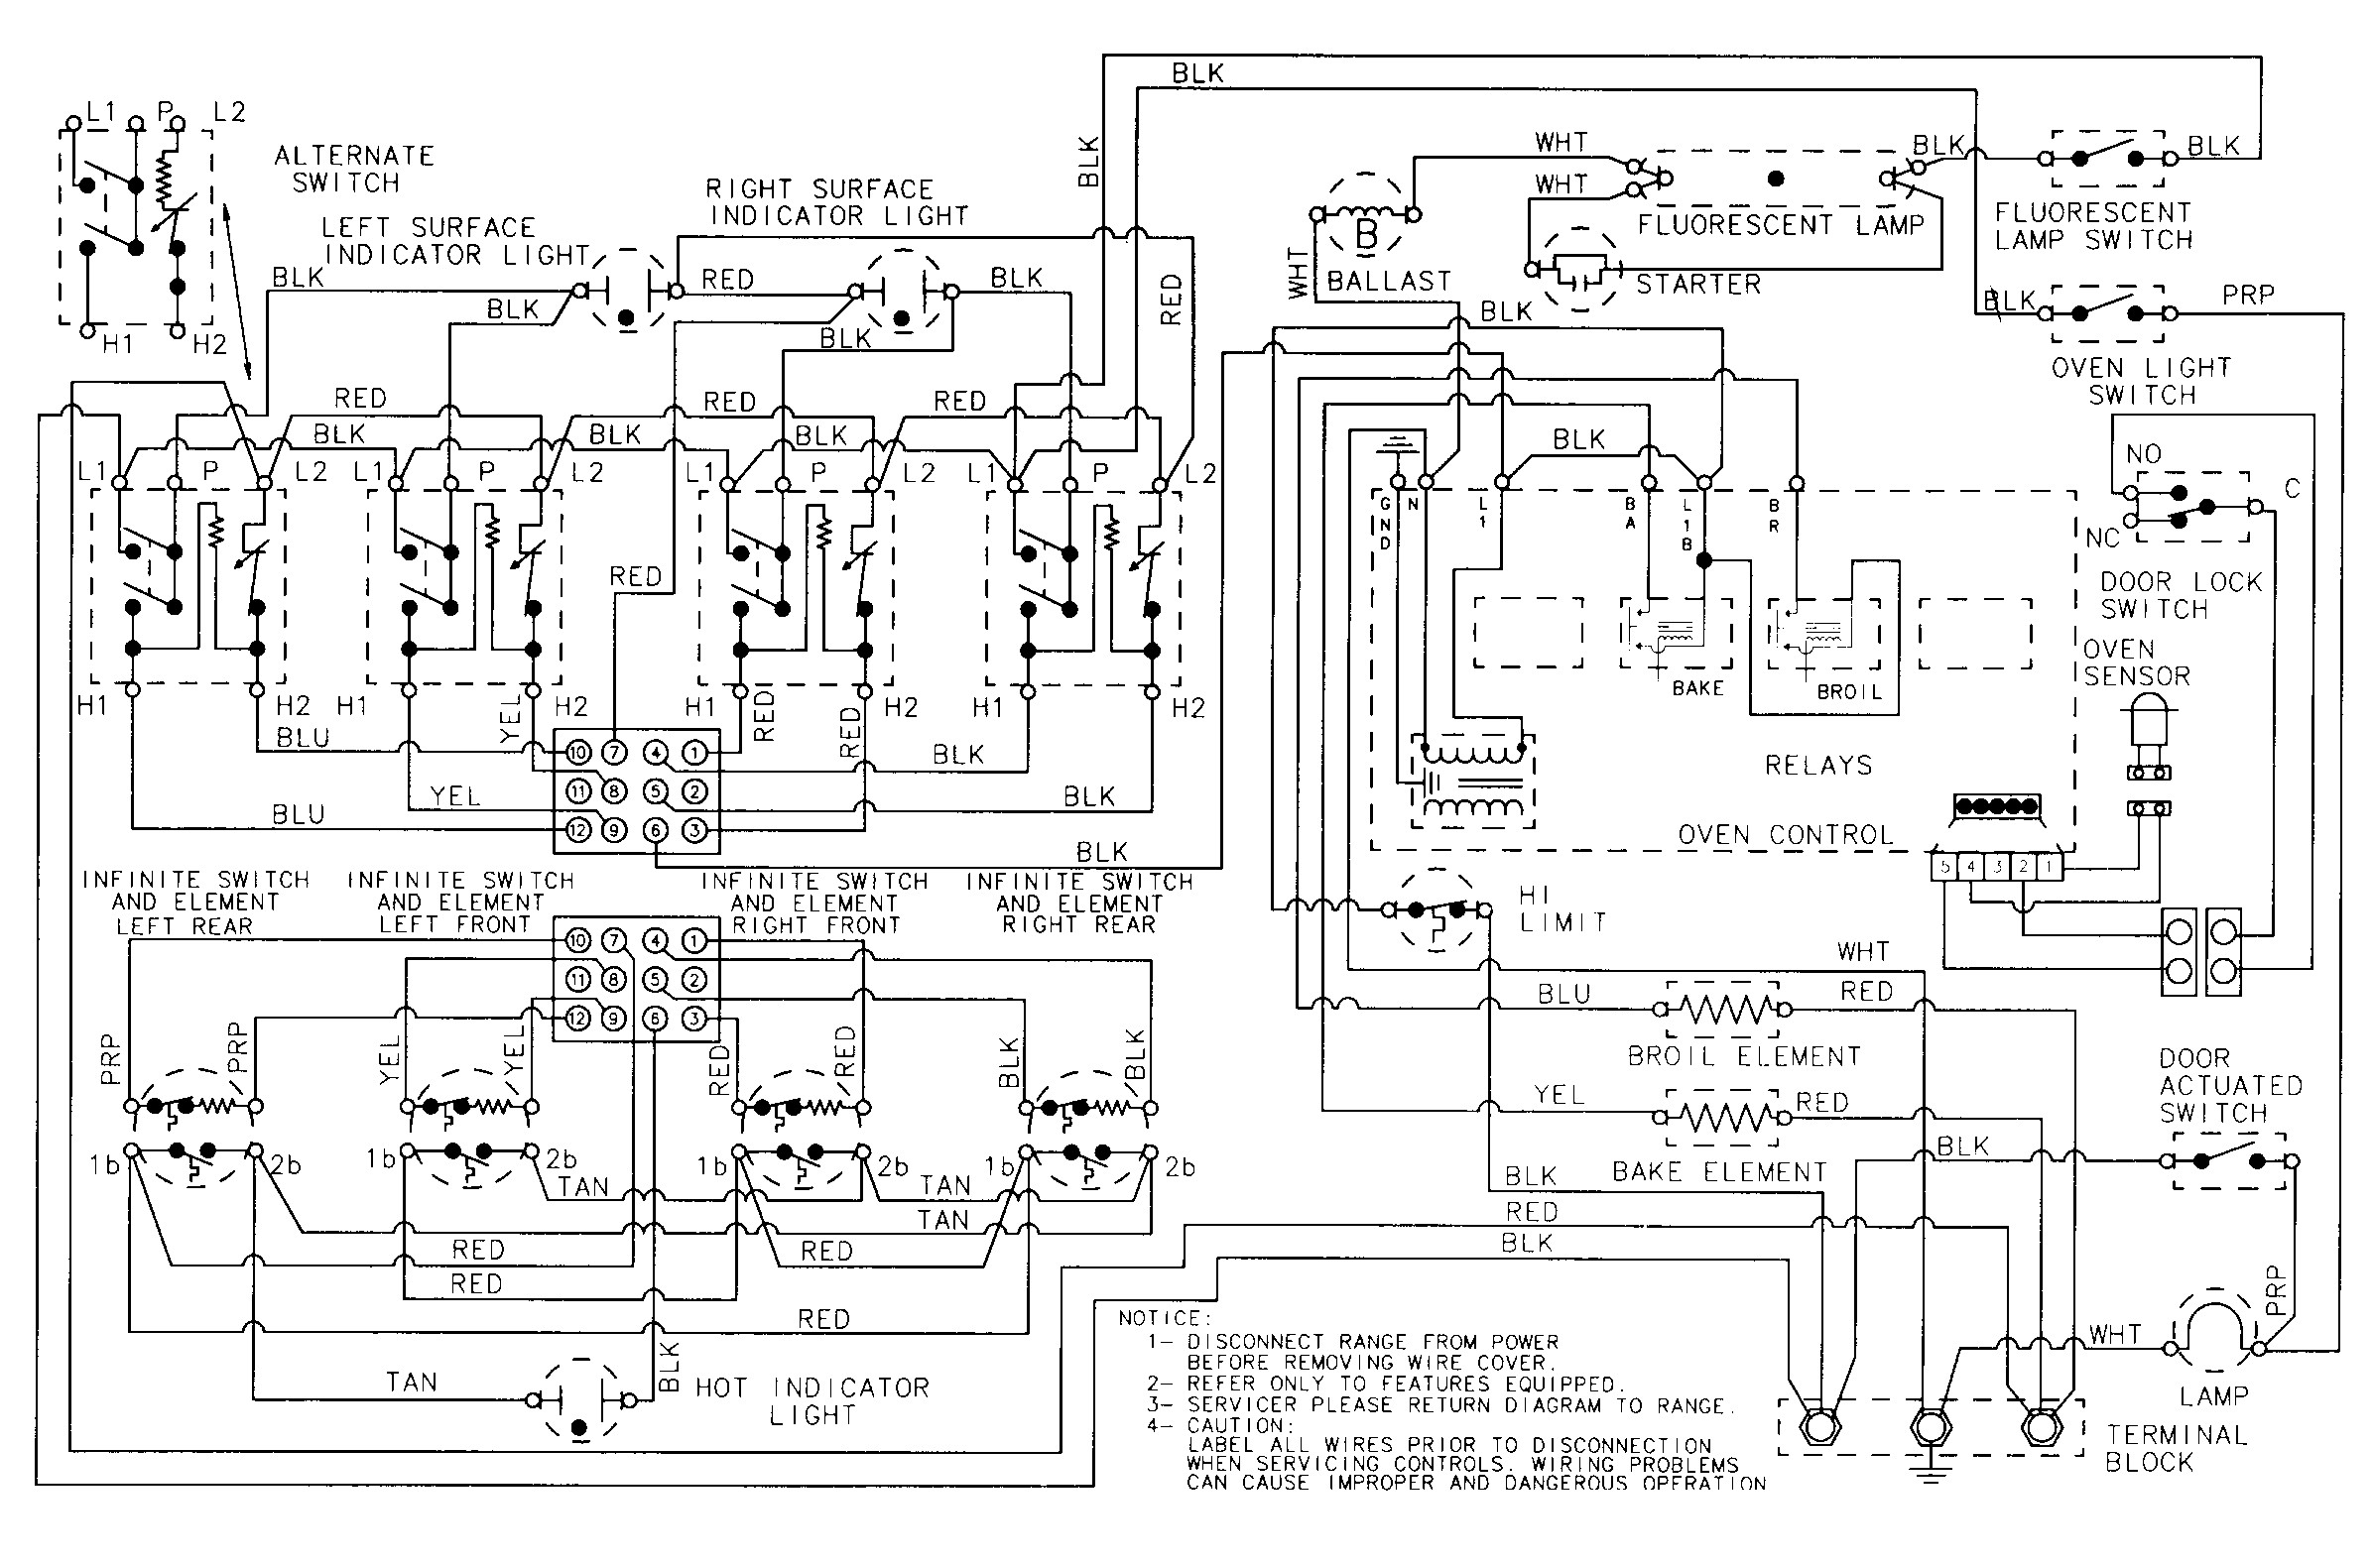 Whirlpool Washer Wiring Diagram Maytag Cre9600 Timer Stove Clocks and Appliance Timers Of Whirlpool Washer Wiring Diagram